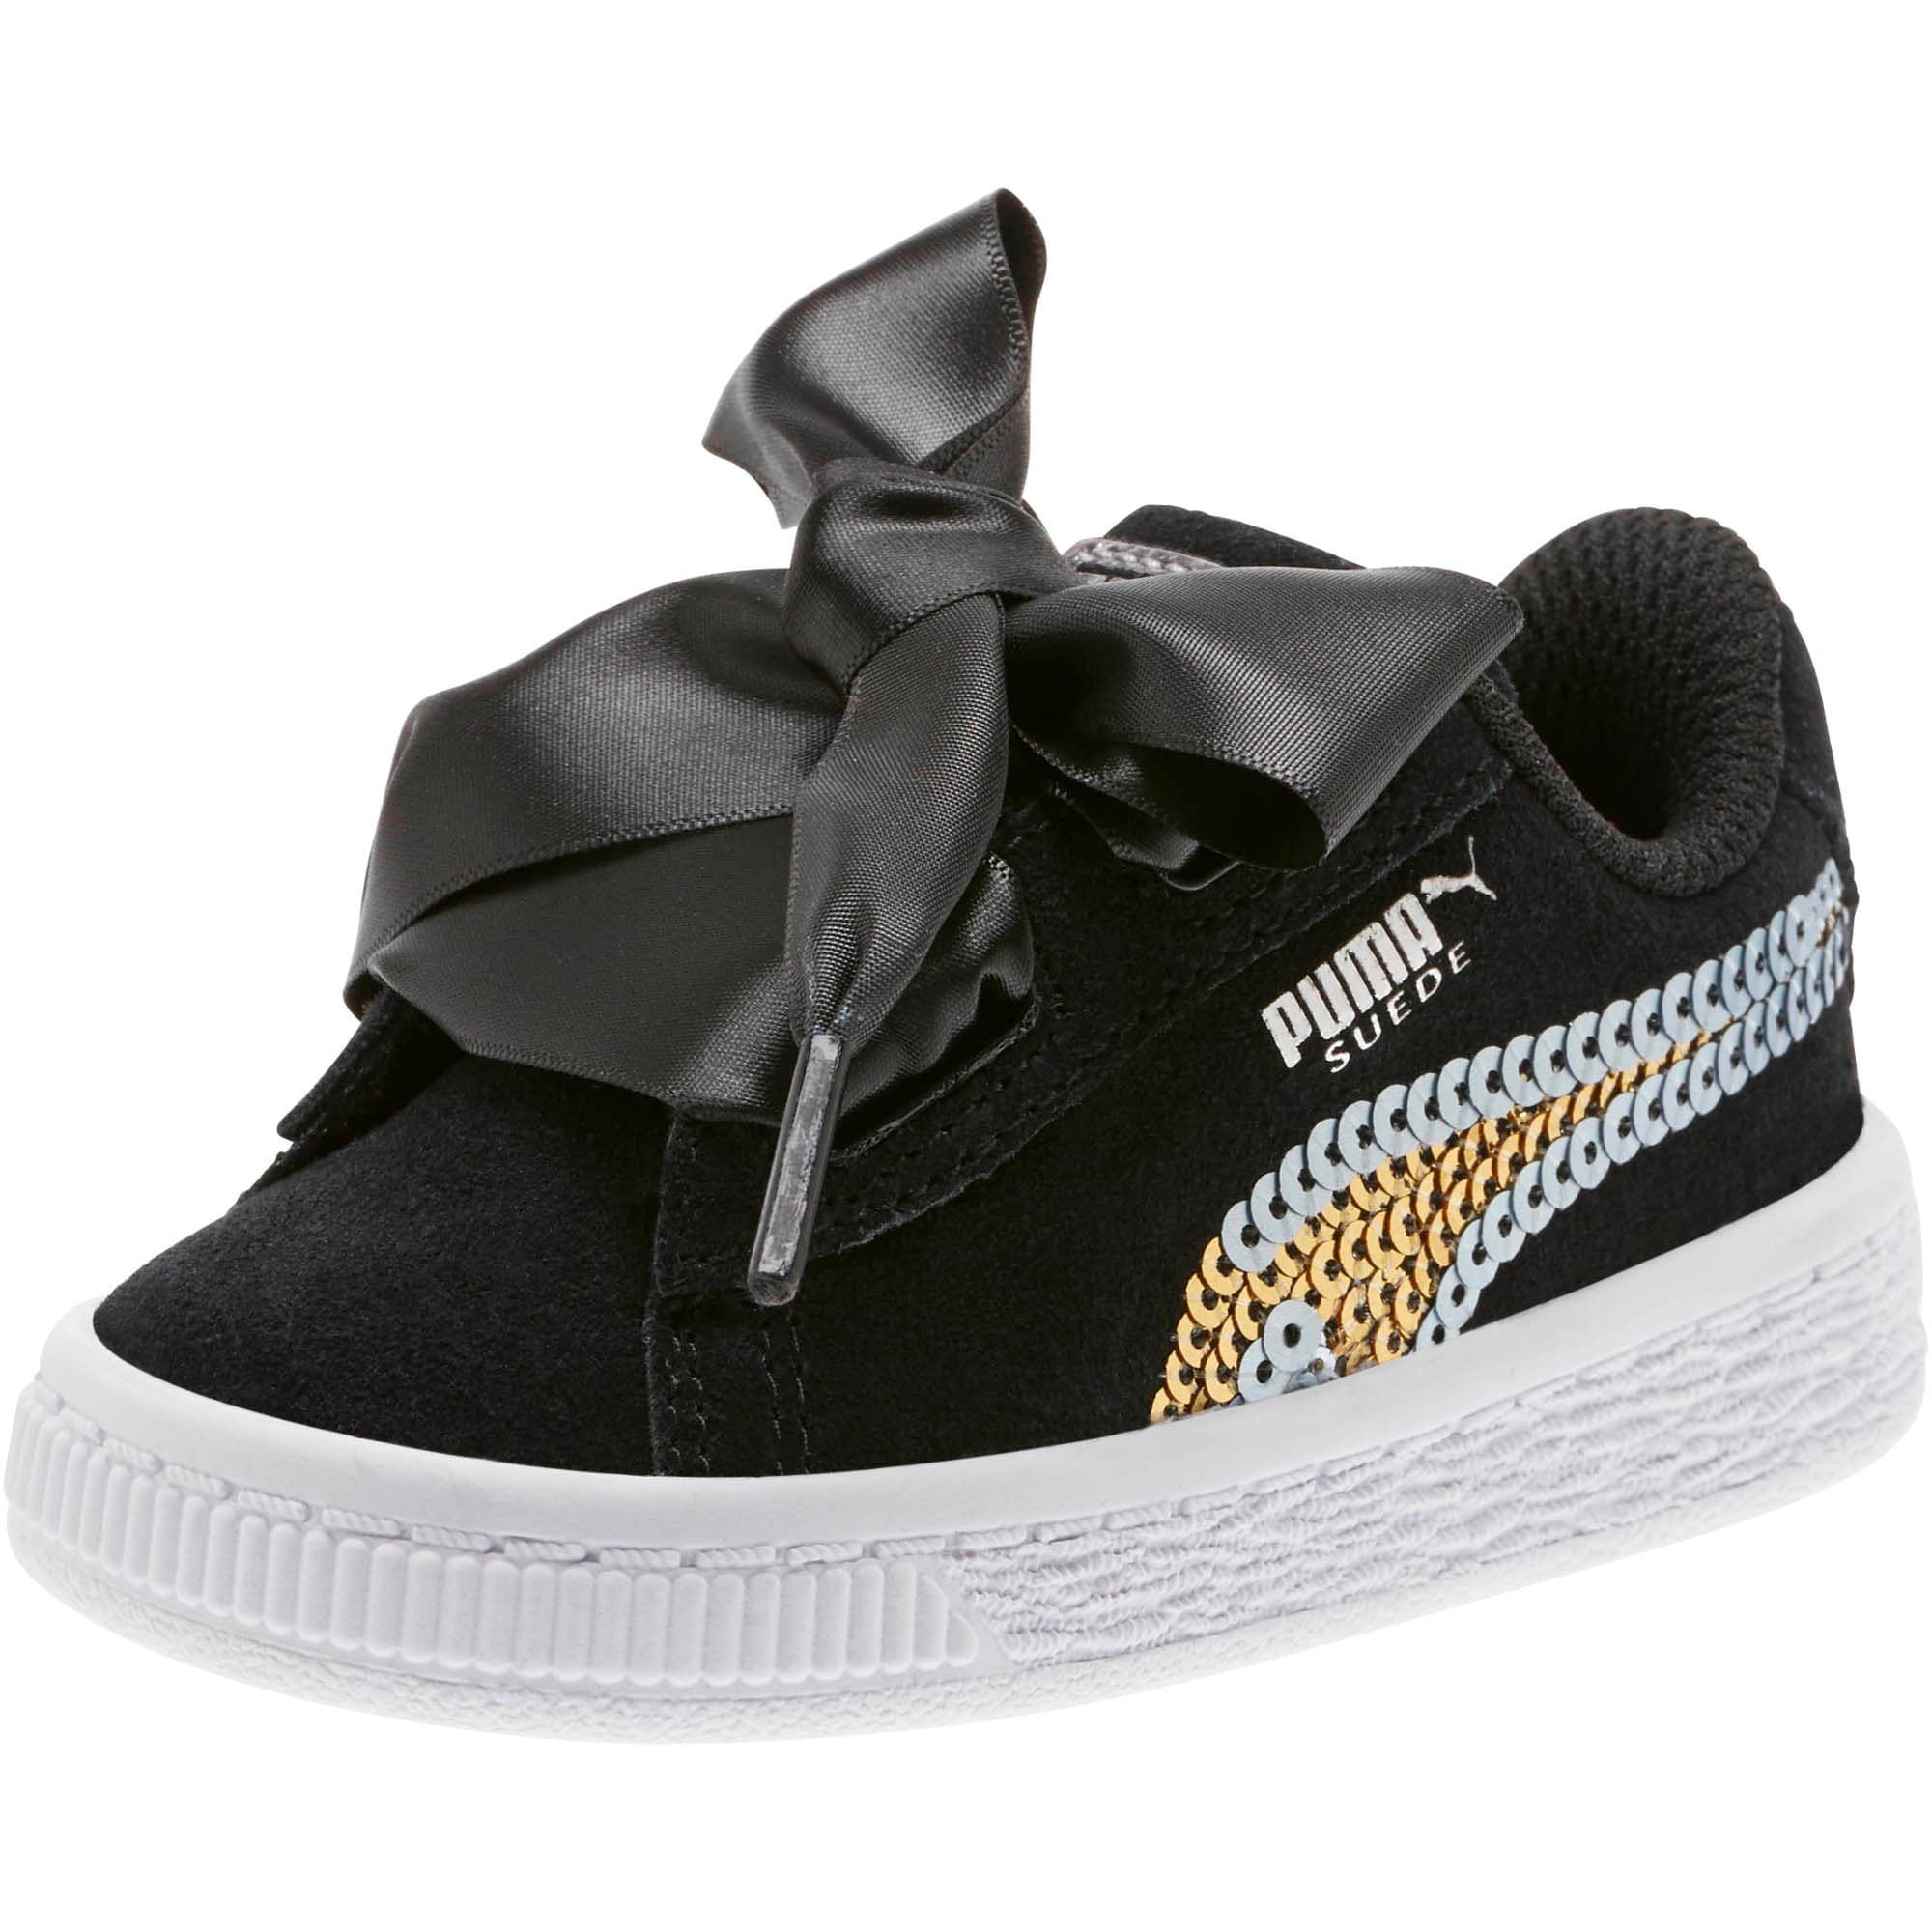 Thumbnail 1 of Suede Heart Trailblazer Sequin Little Kids' Shoes, Puma Black-Puma Team Gold, medium